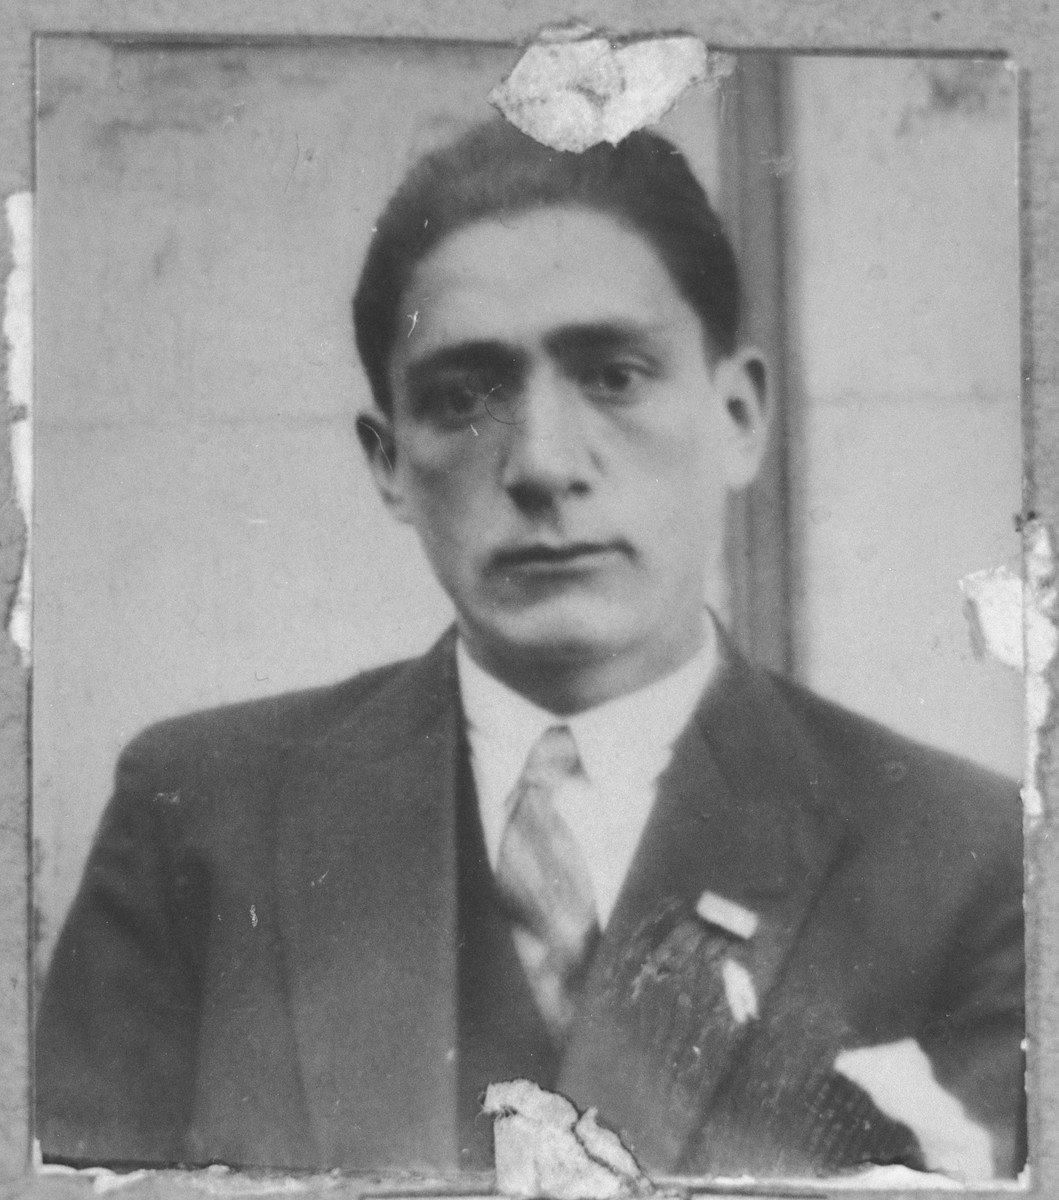 Portrait of Rafael Testa, son of Mordechai Testa.  He was a tailor.  He lived on Asadbegova in Bitola.